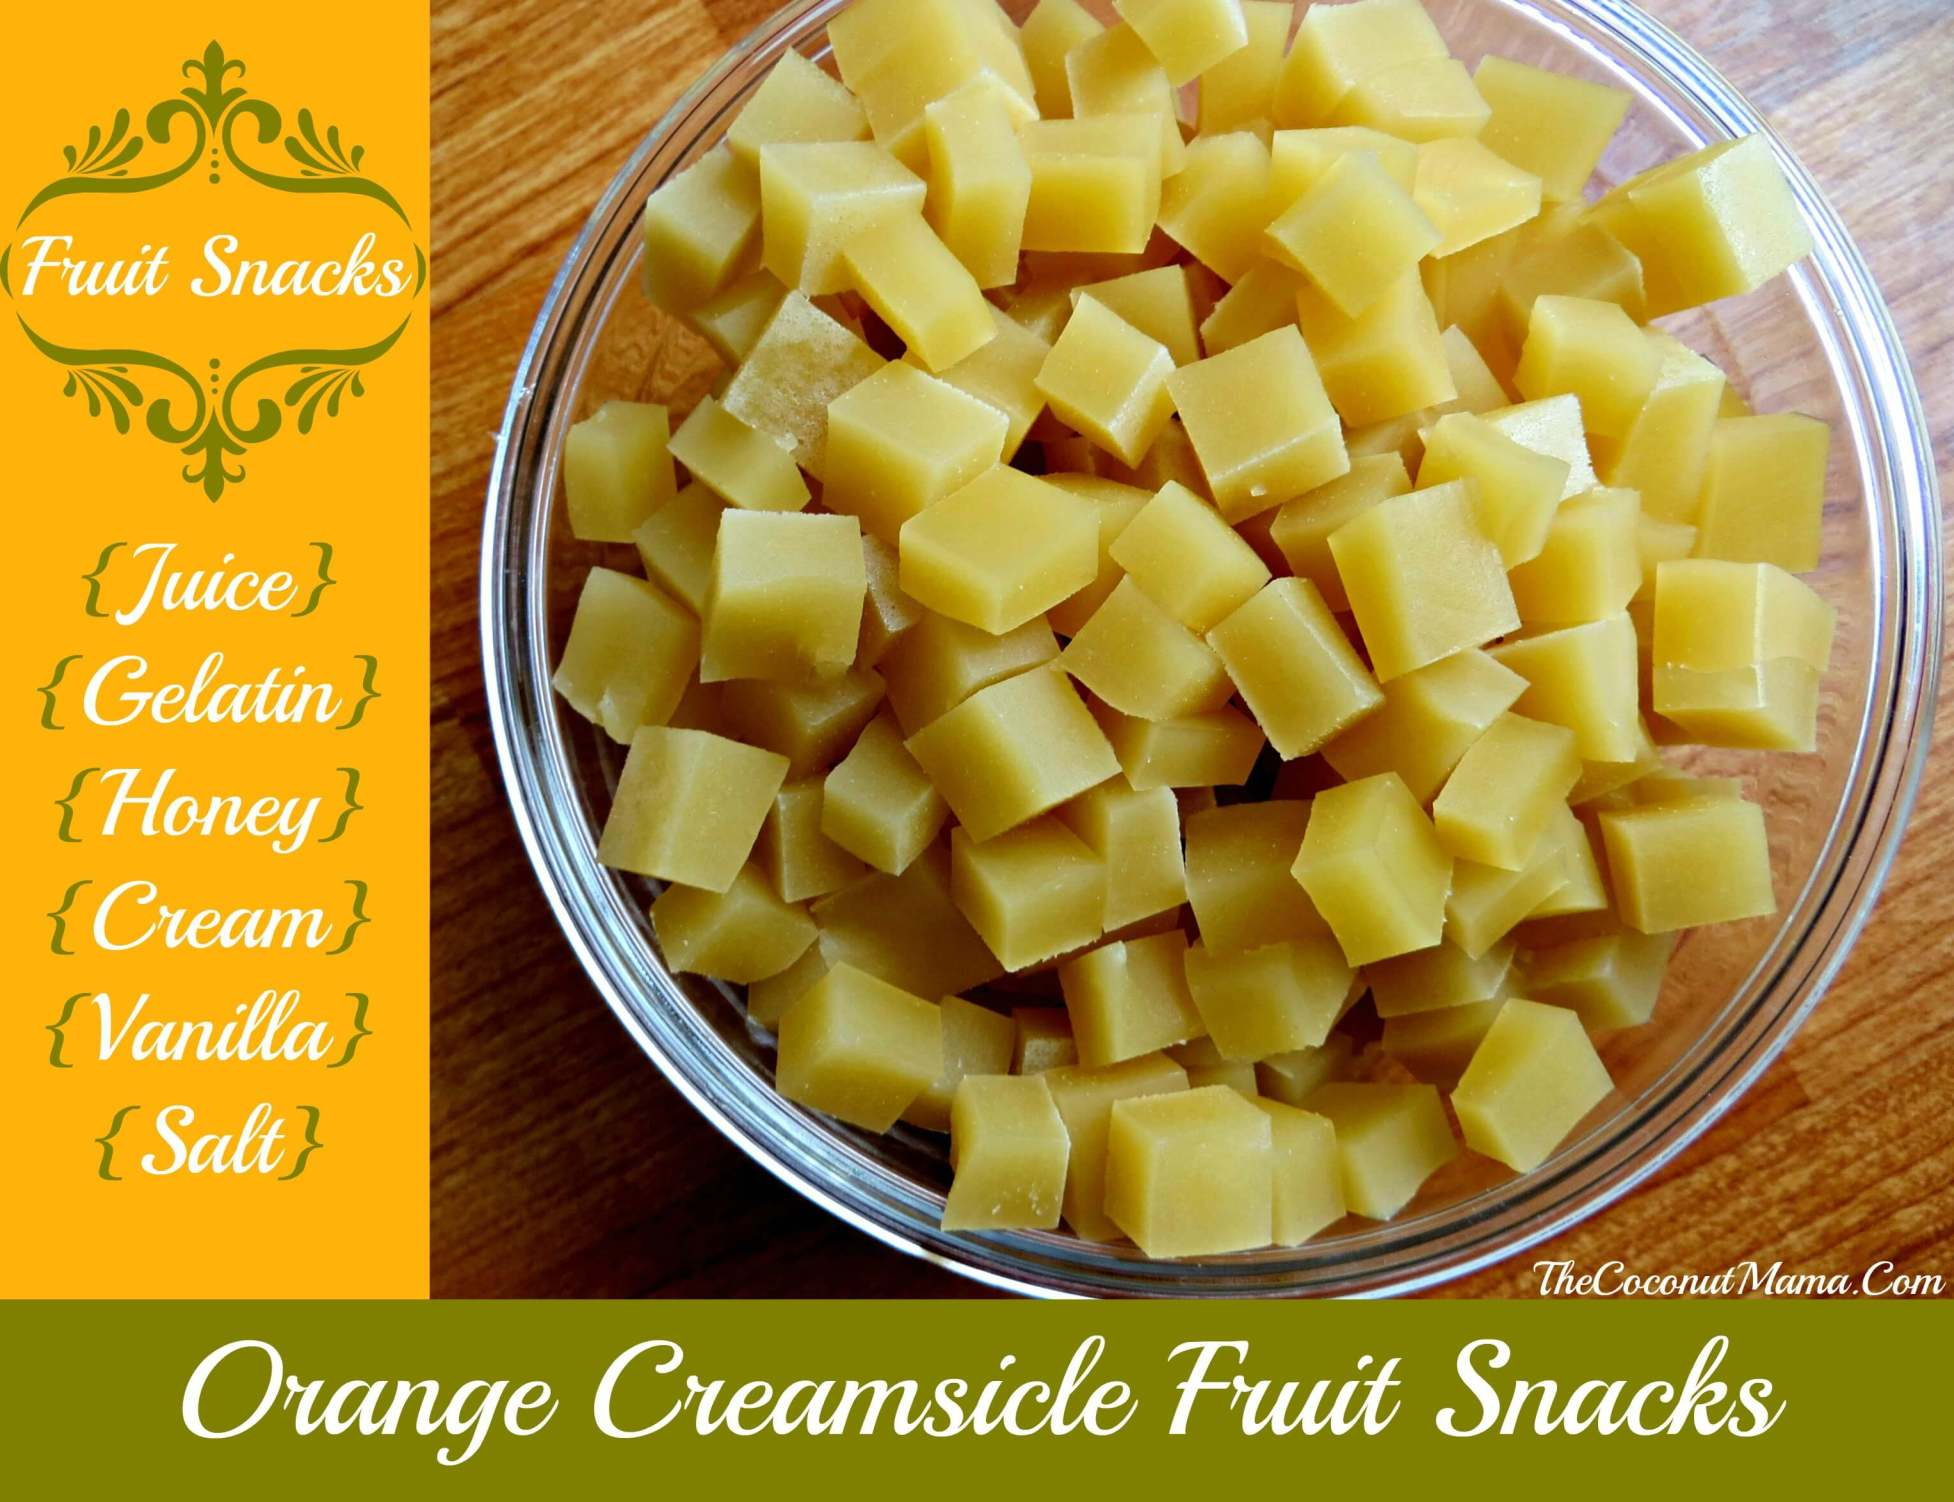 Creamsicle Gummy Fruit Snacks from The Coconut Mama